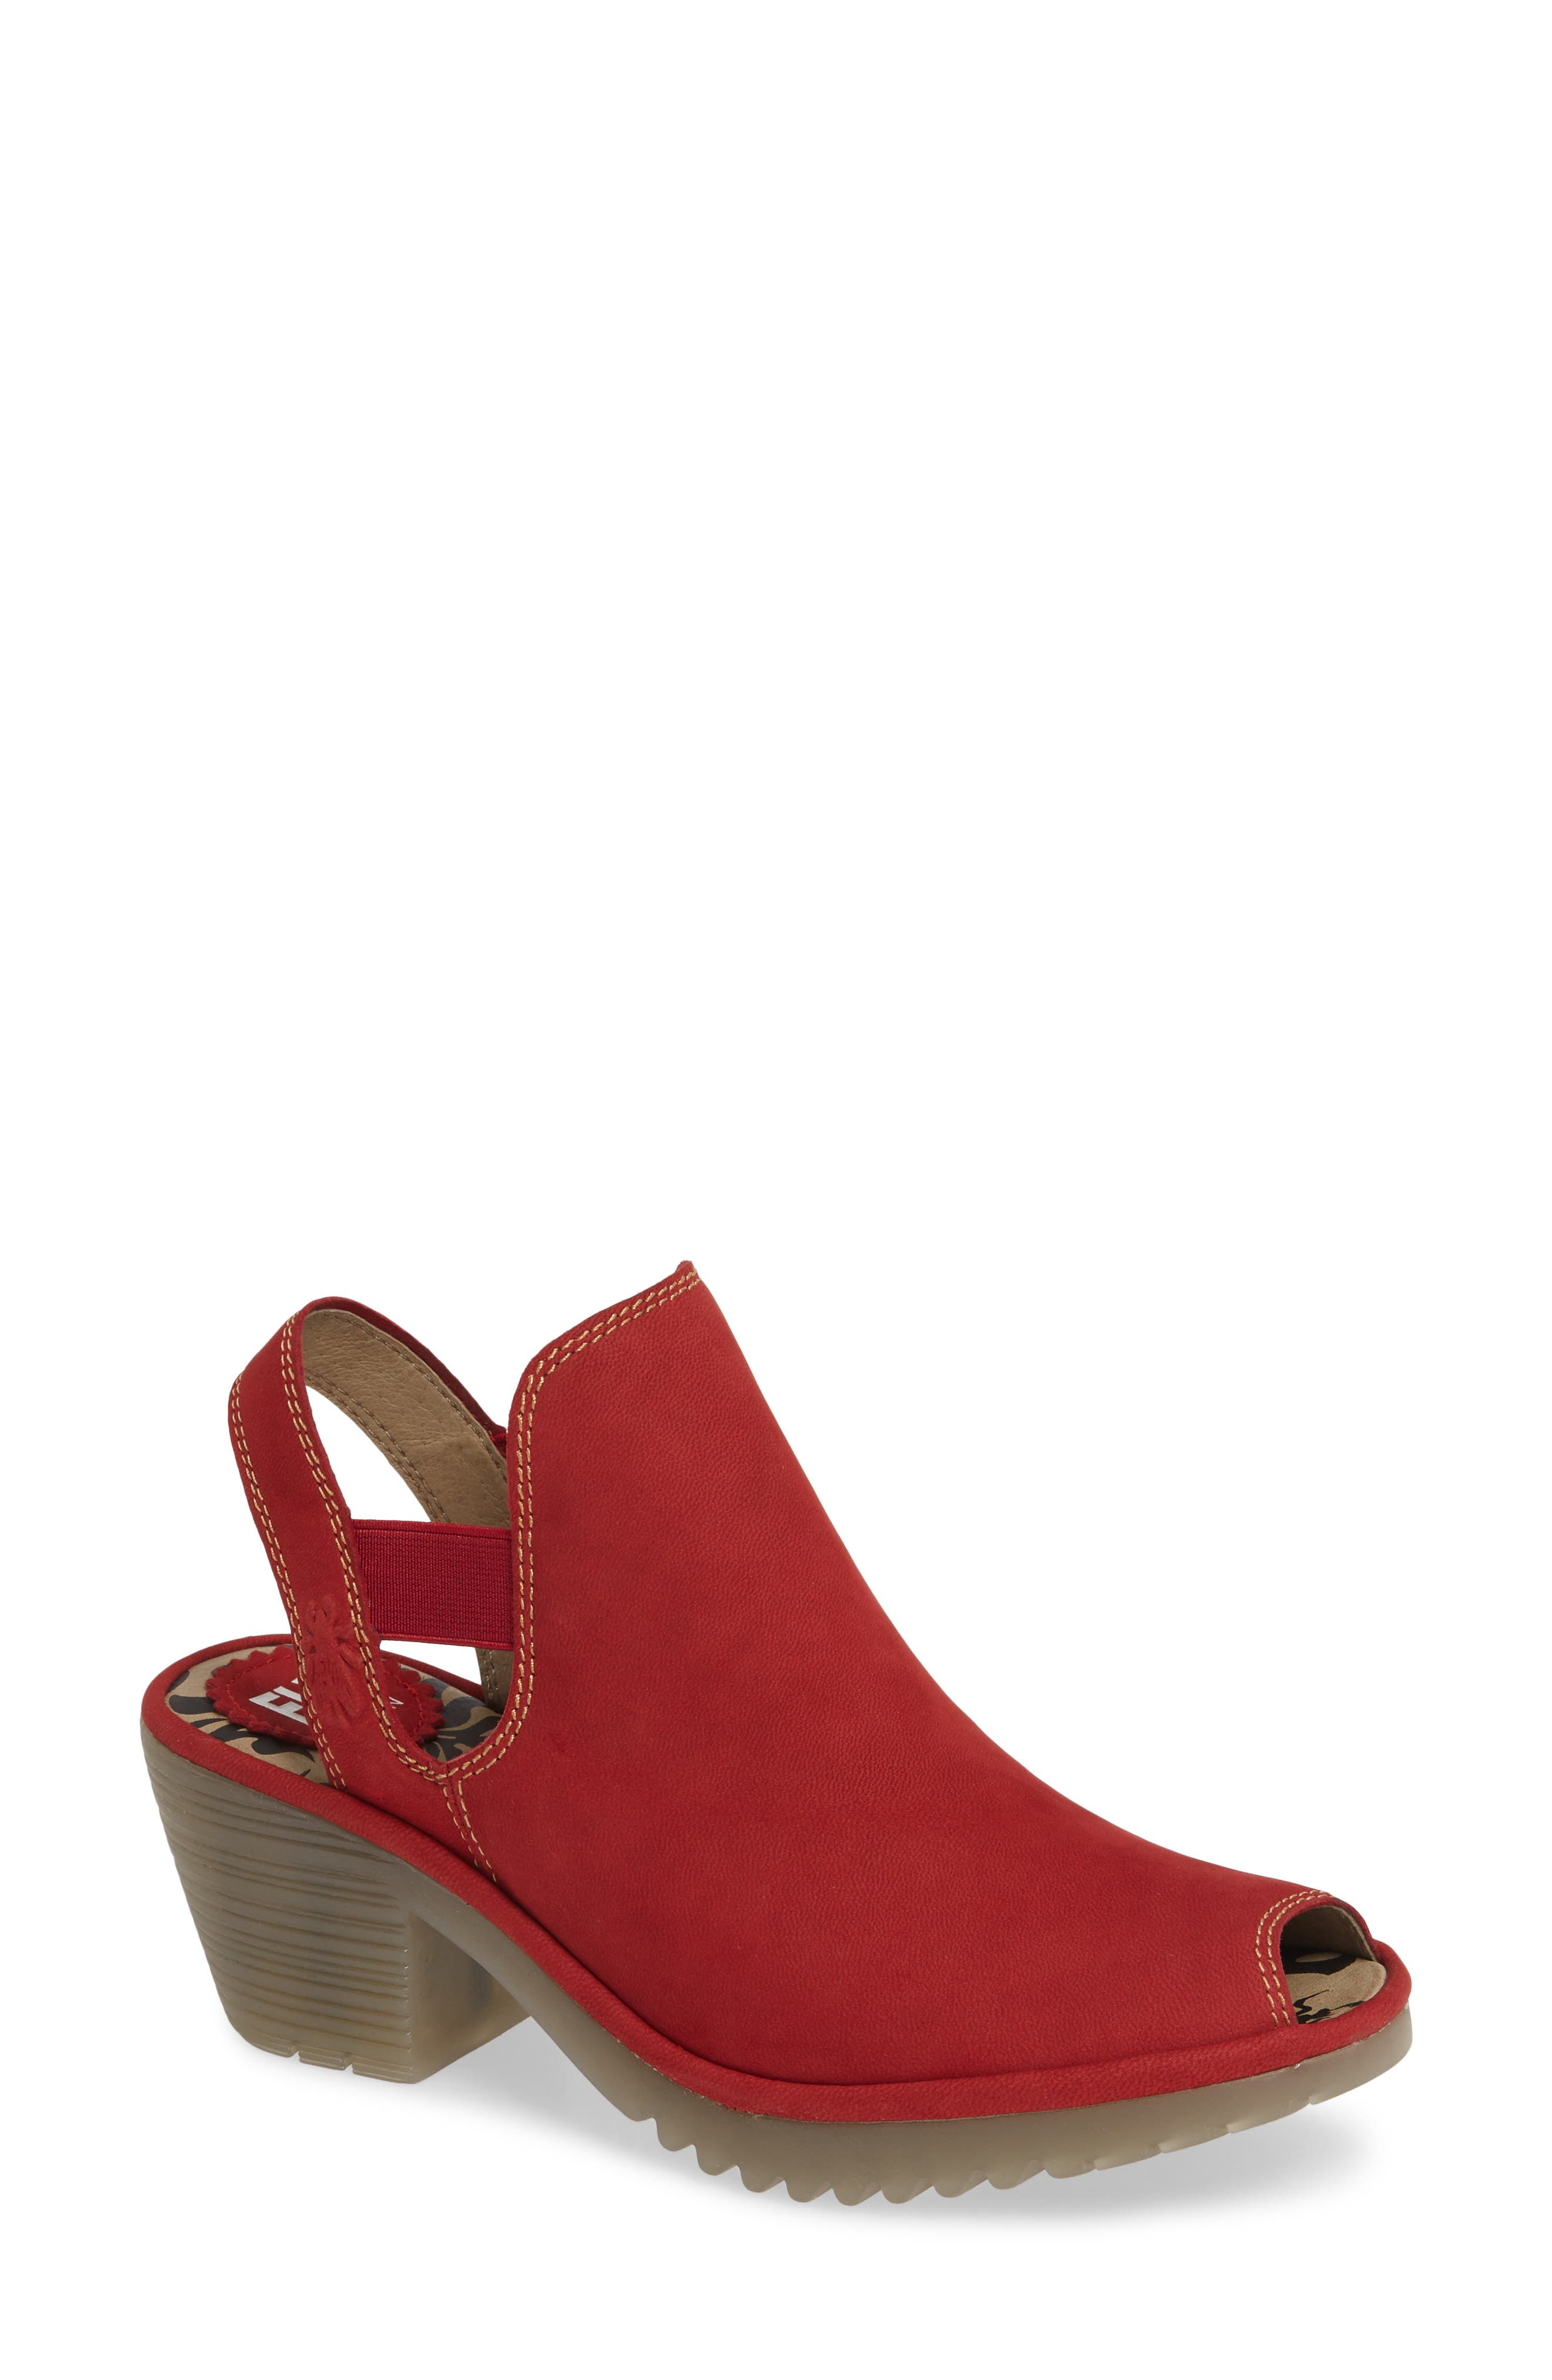 Fly London Wari Slingback Bootie, Red